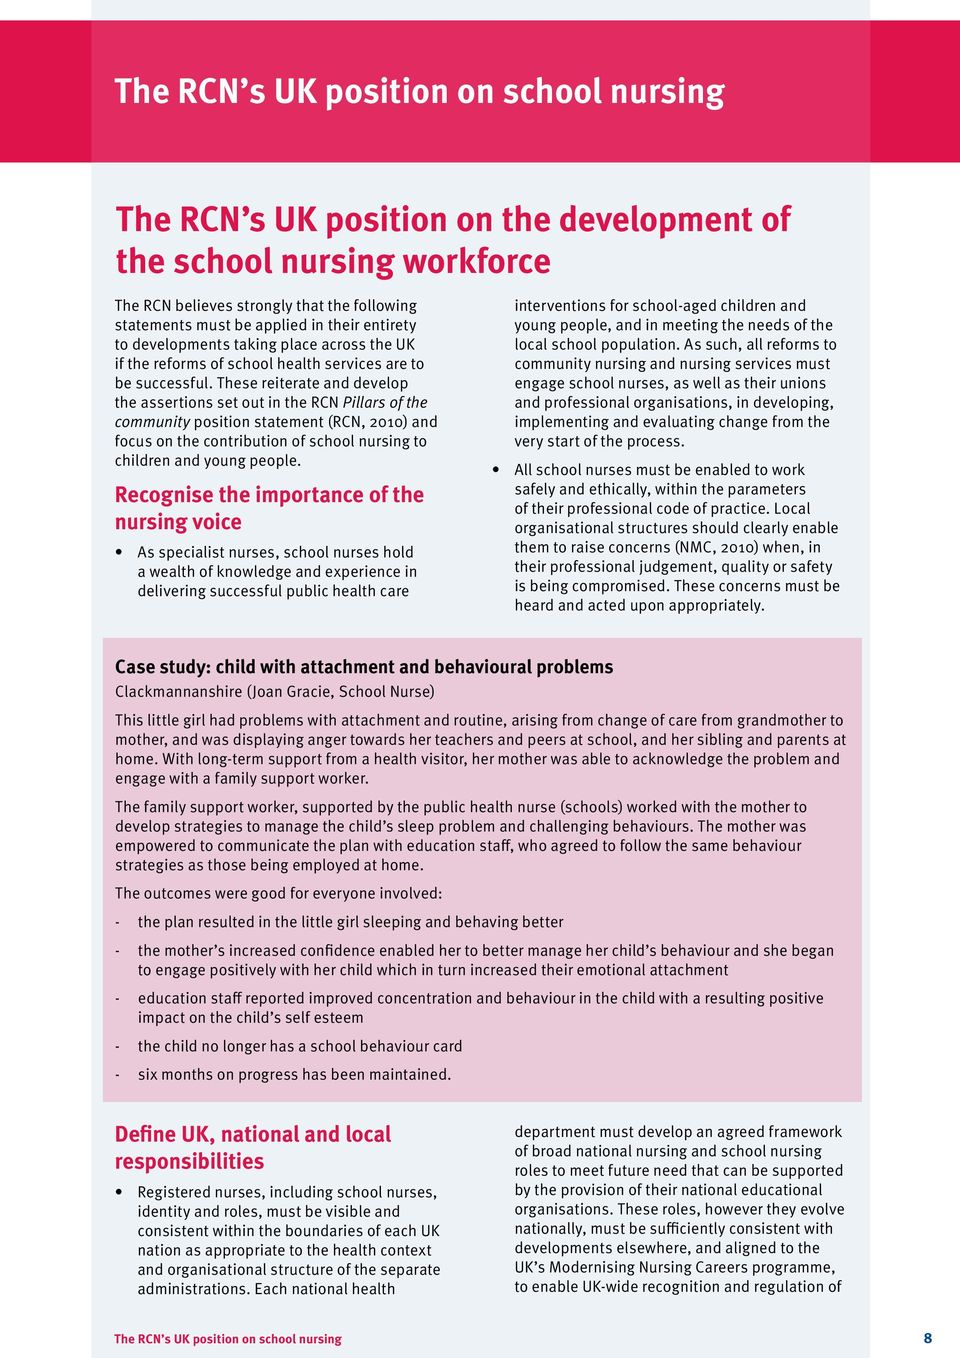 These reiterate and develop the assertions set out in the RCN Pillars of the community position statement (RCN, 2010) and focus on the contribution of school nursing to children and young people.